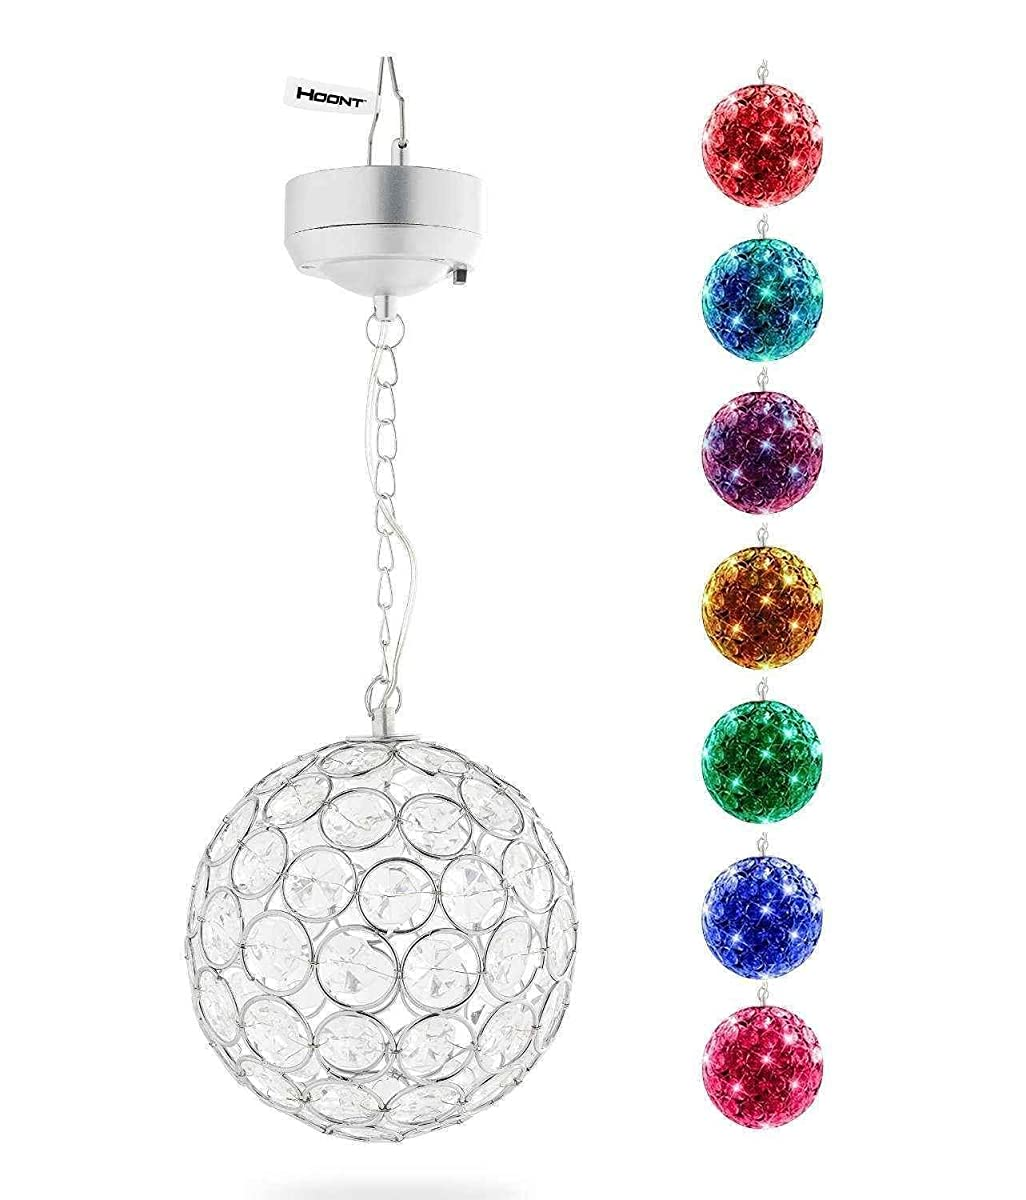 Hoont™ Outdoor Hanging Decorative Sparkling Crystals Gazing Ball with Solar Powered Color Changing LED Light – 6 Inch Diameter